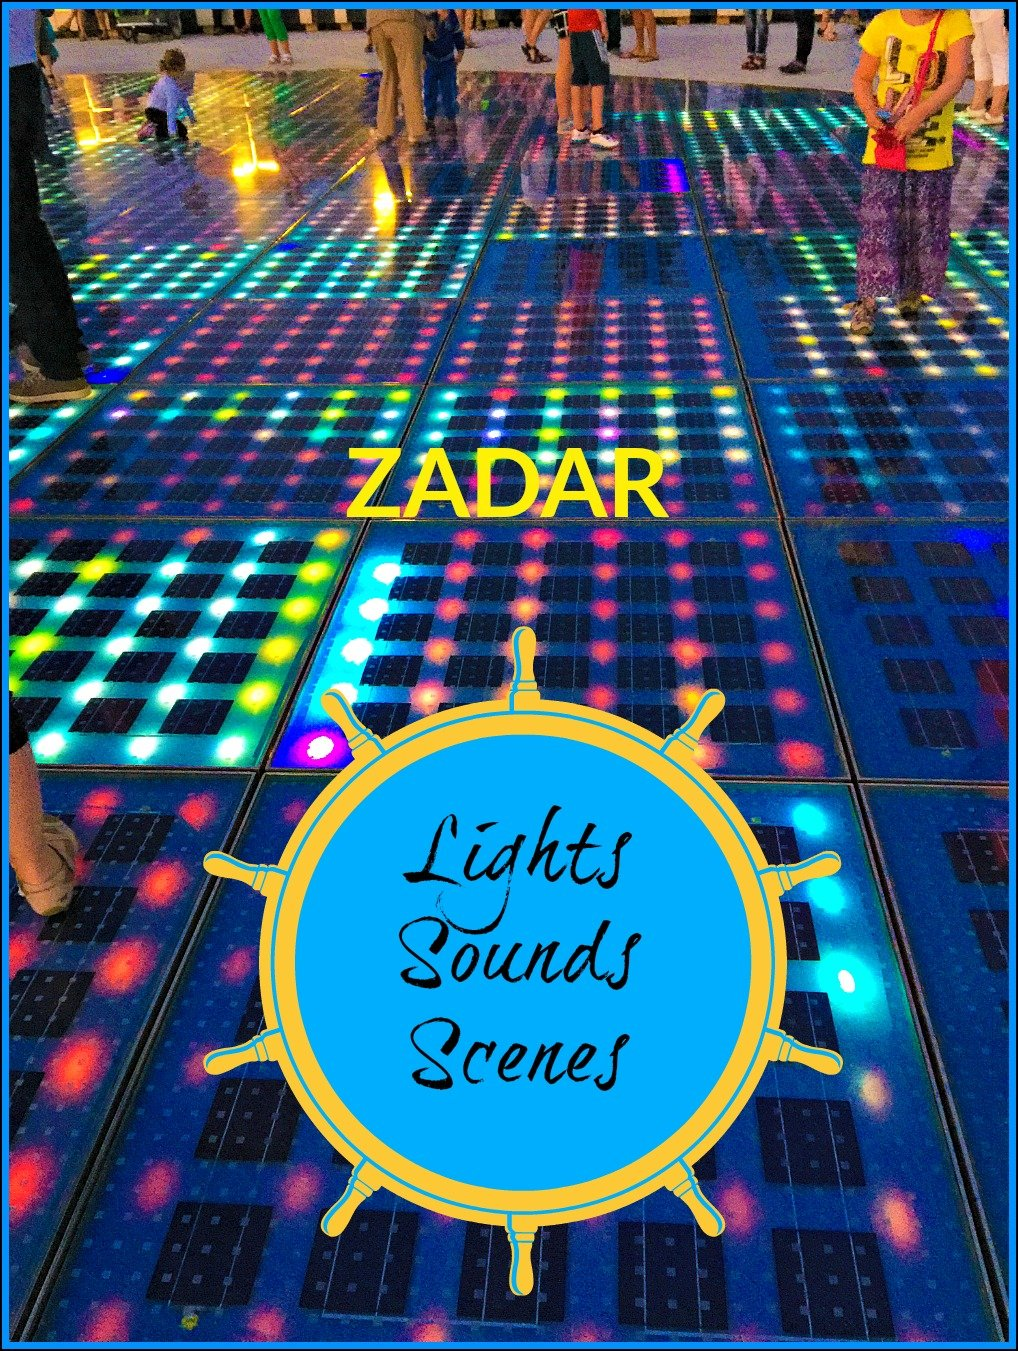 Zadar Lights Sounds Scenes